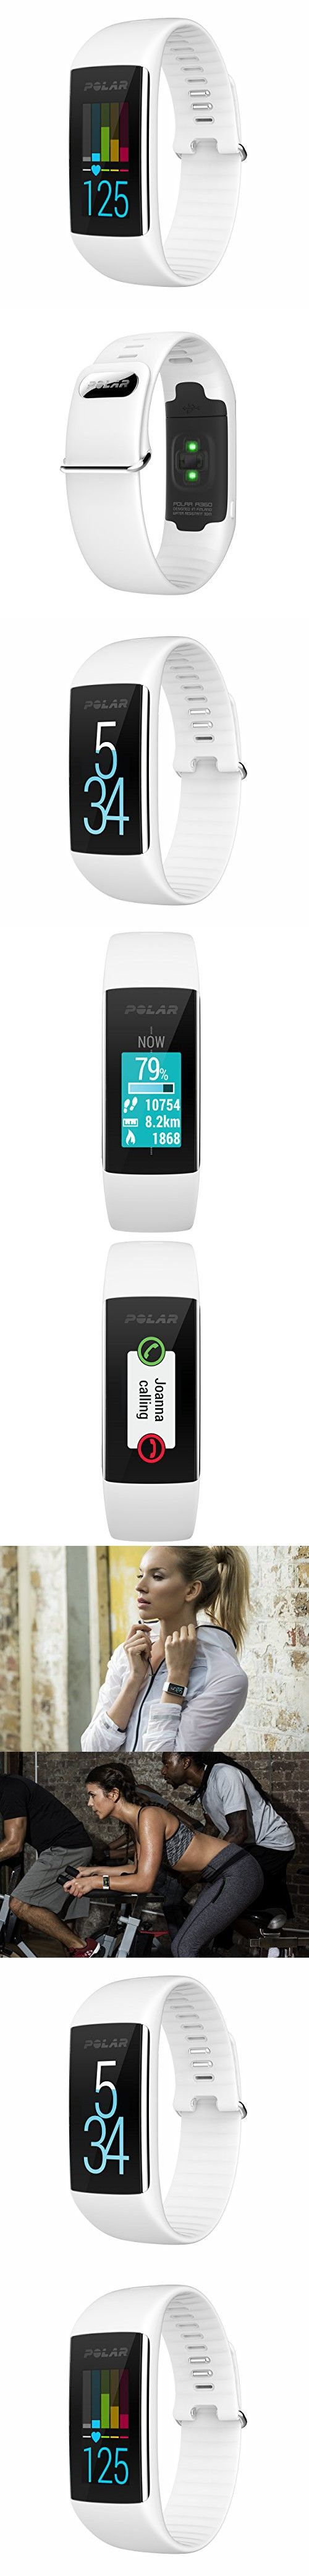 Polar A360 Fitness Tracker with Wrist Heart Rate Monitor (White, Small)